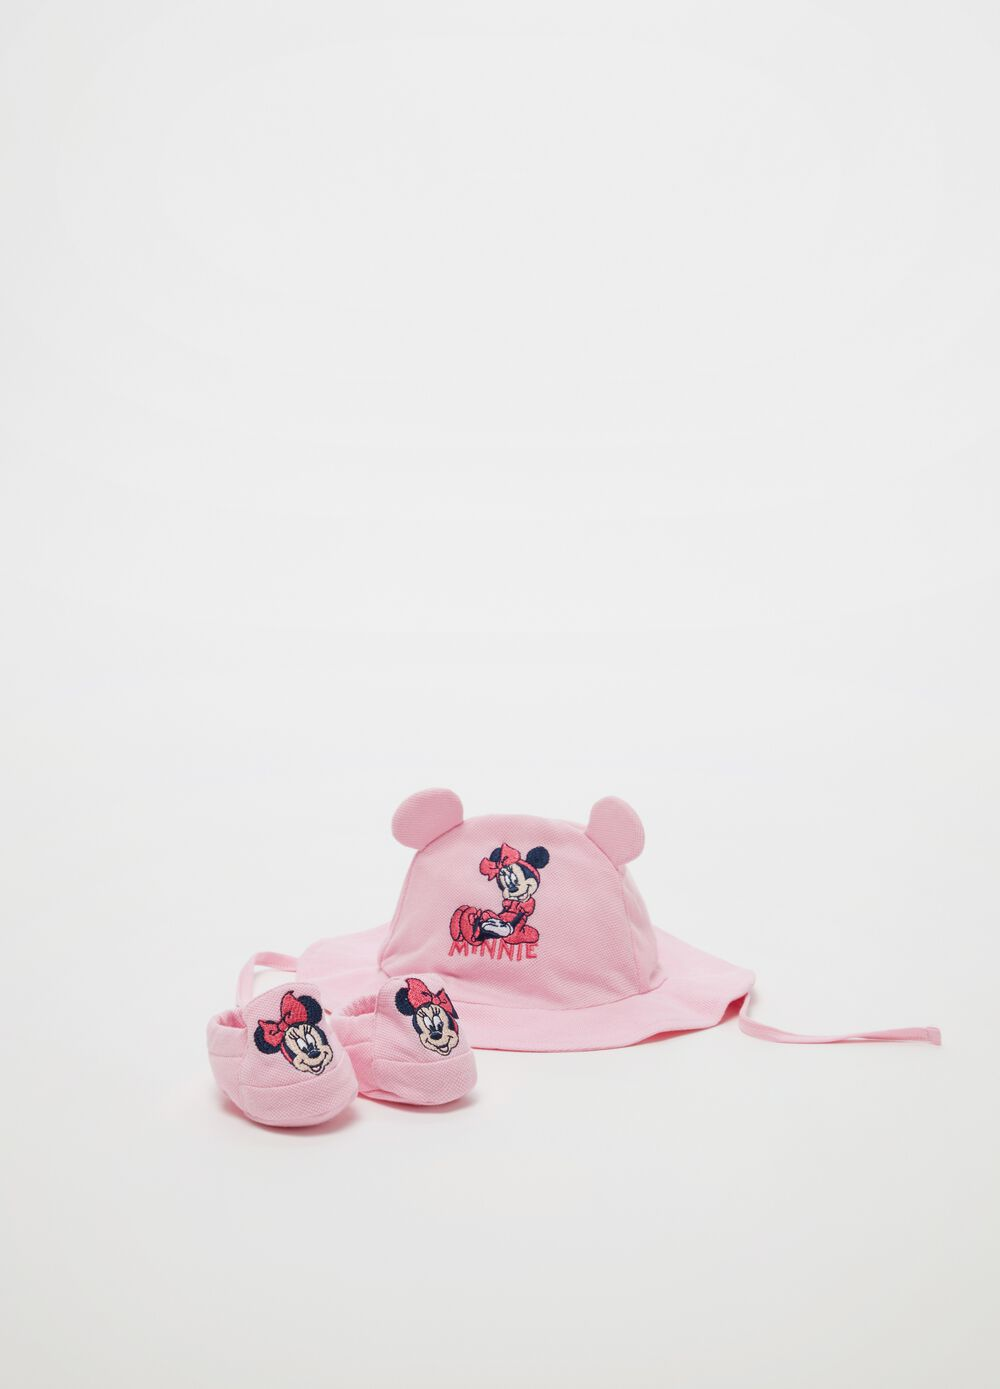 Disney Baby Minnie Mouse hat and shoes set